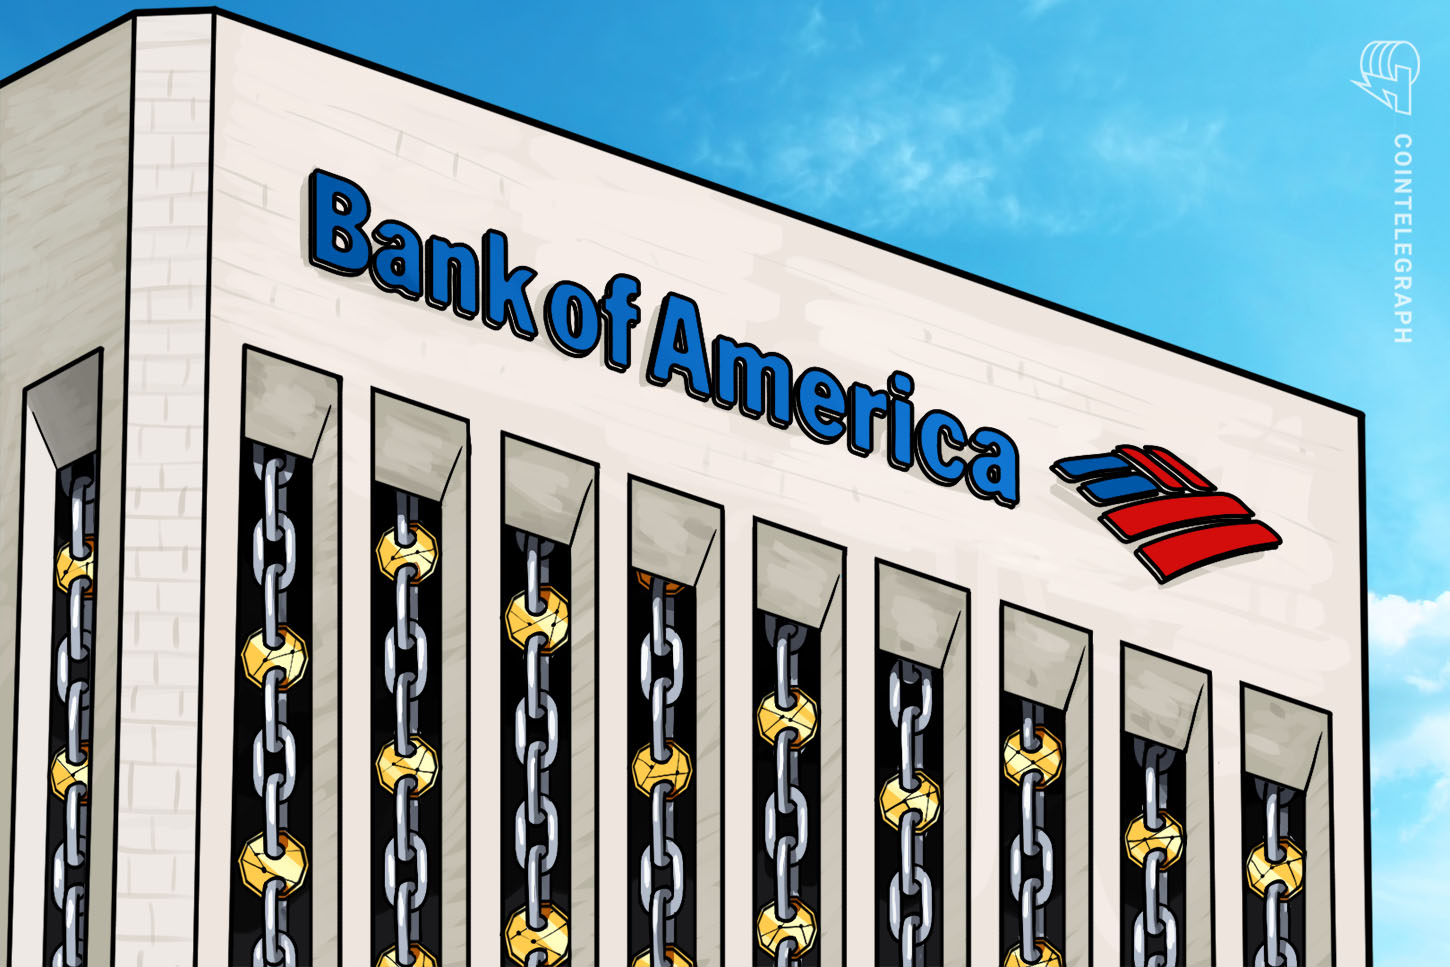 bank of america cryptocurrency patent